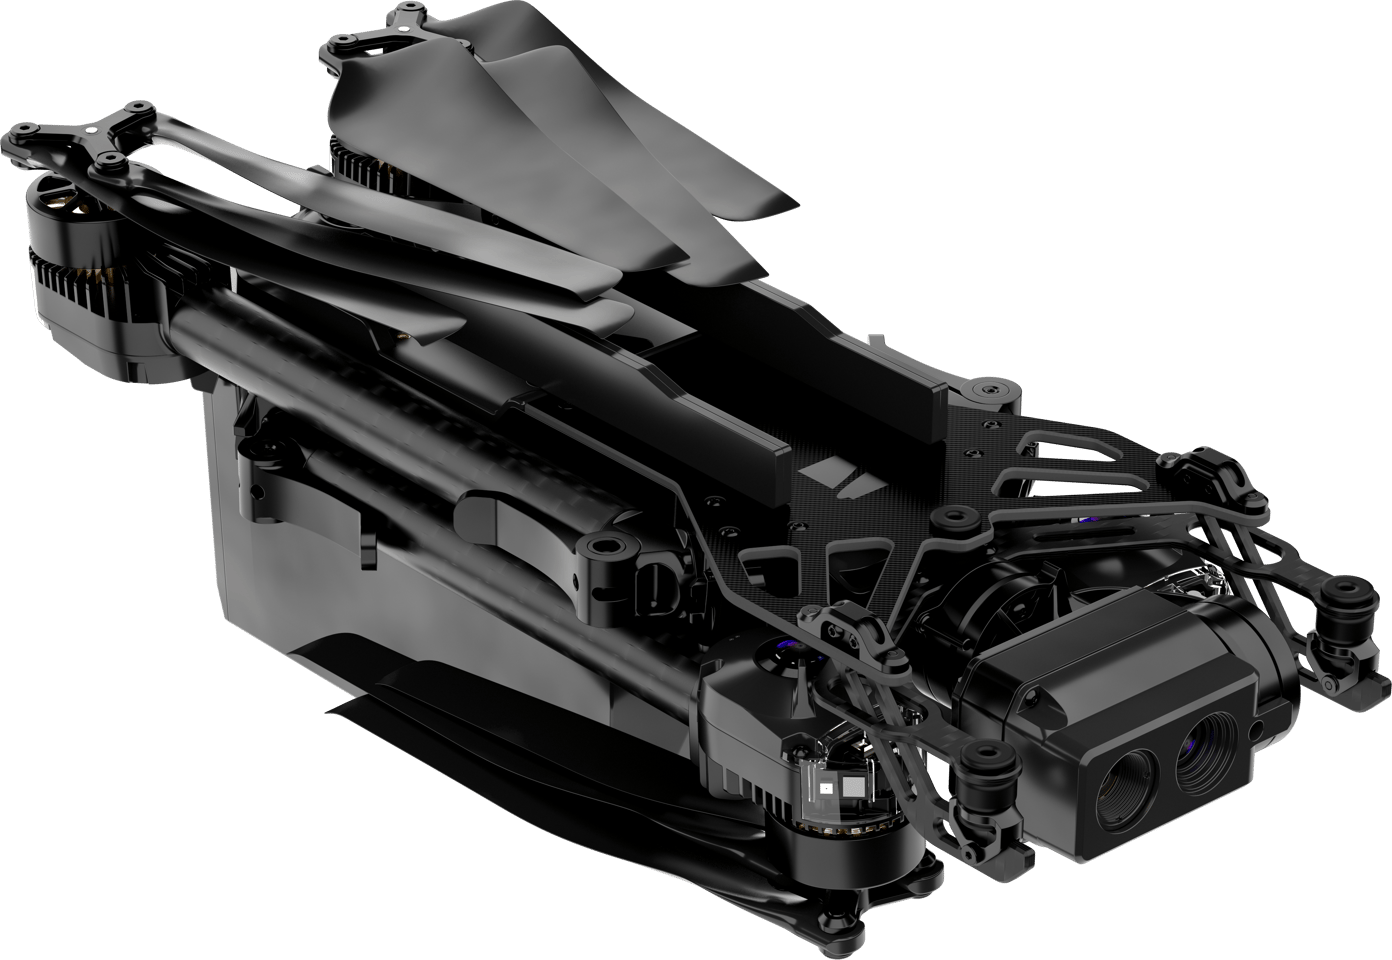 The Skydio X2 folds up for transport